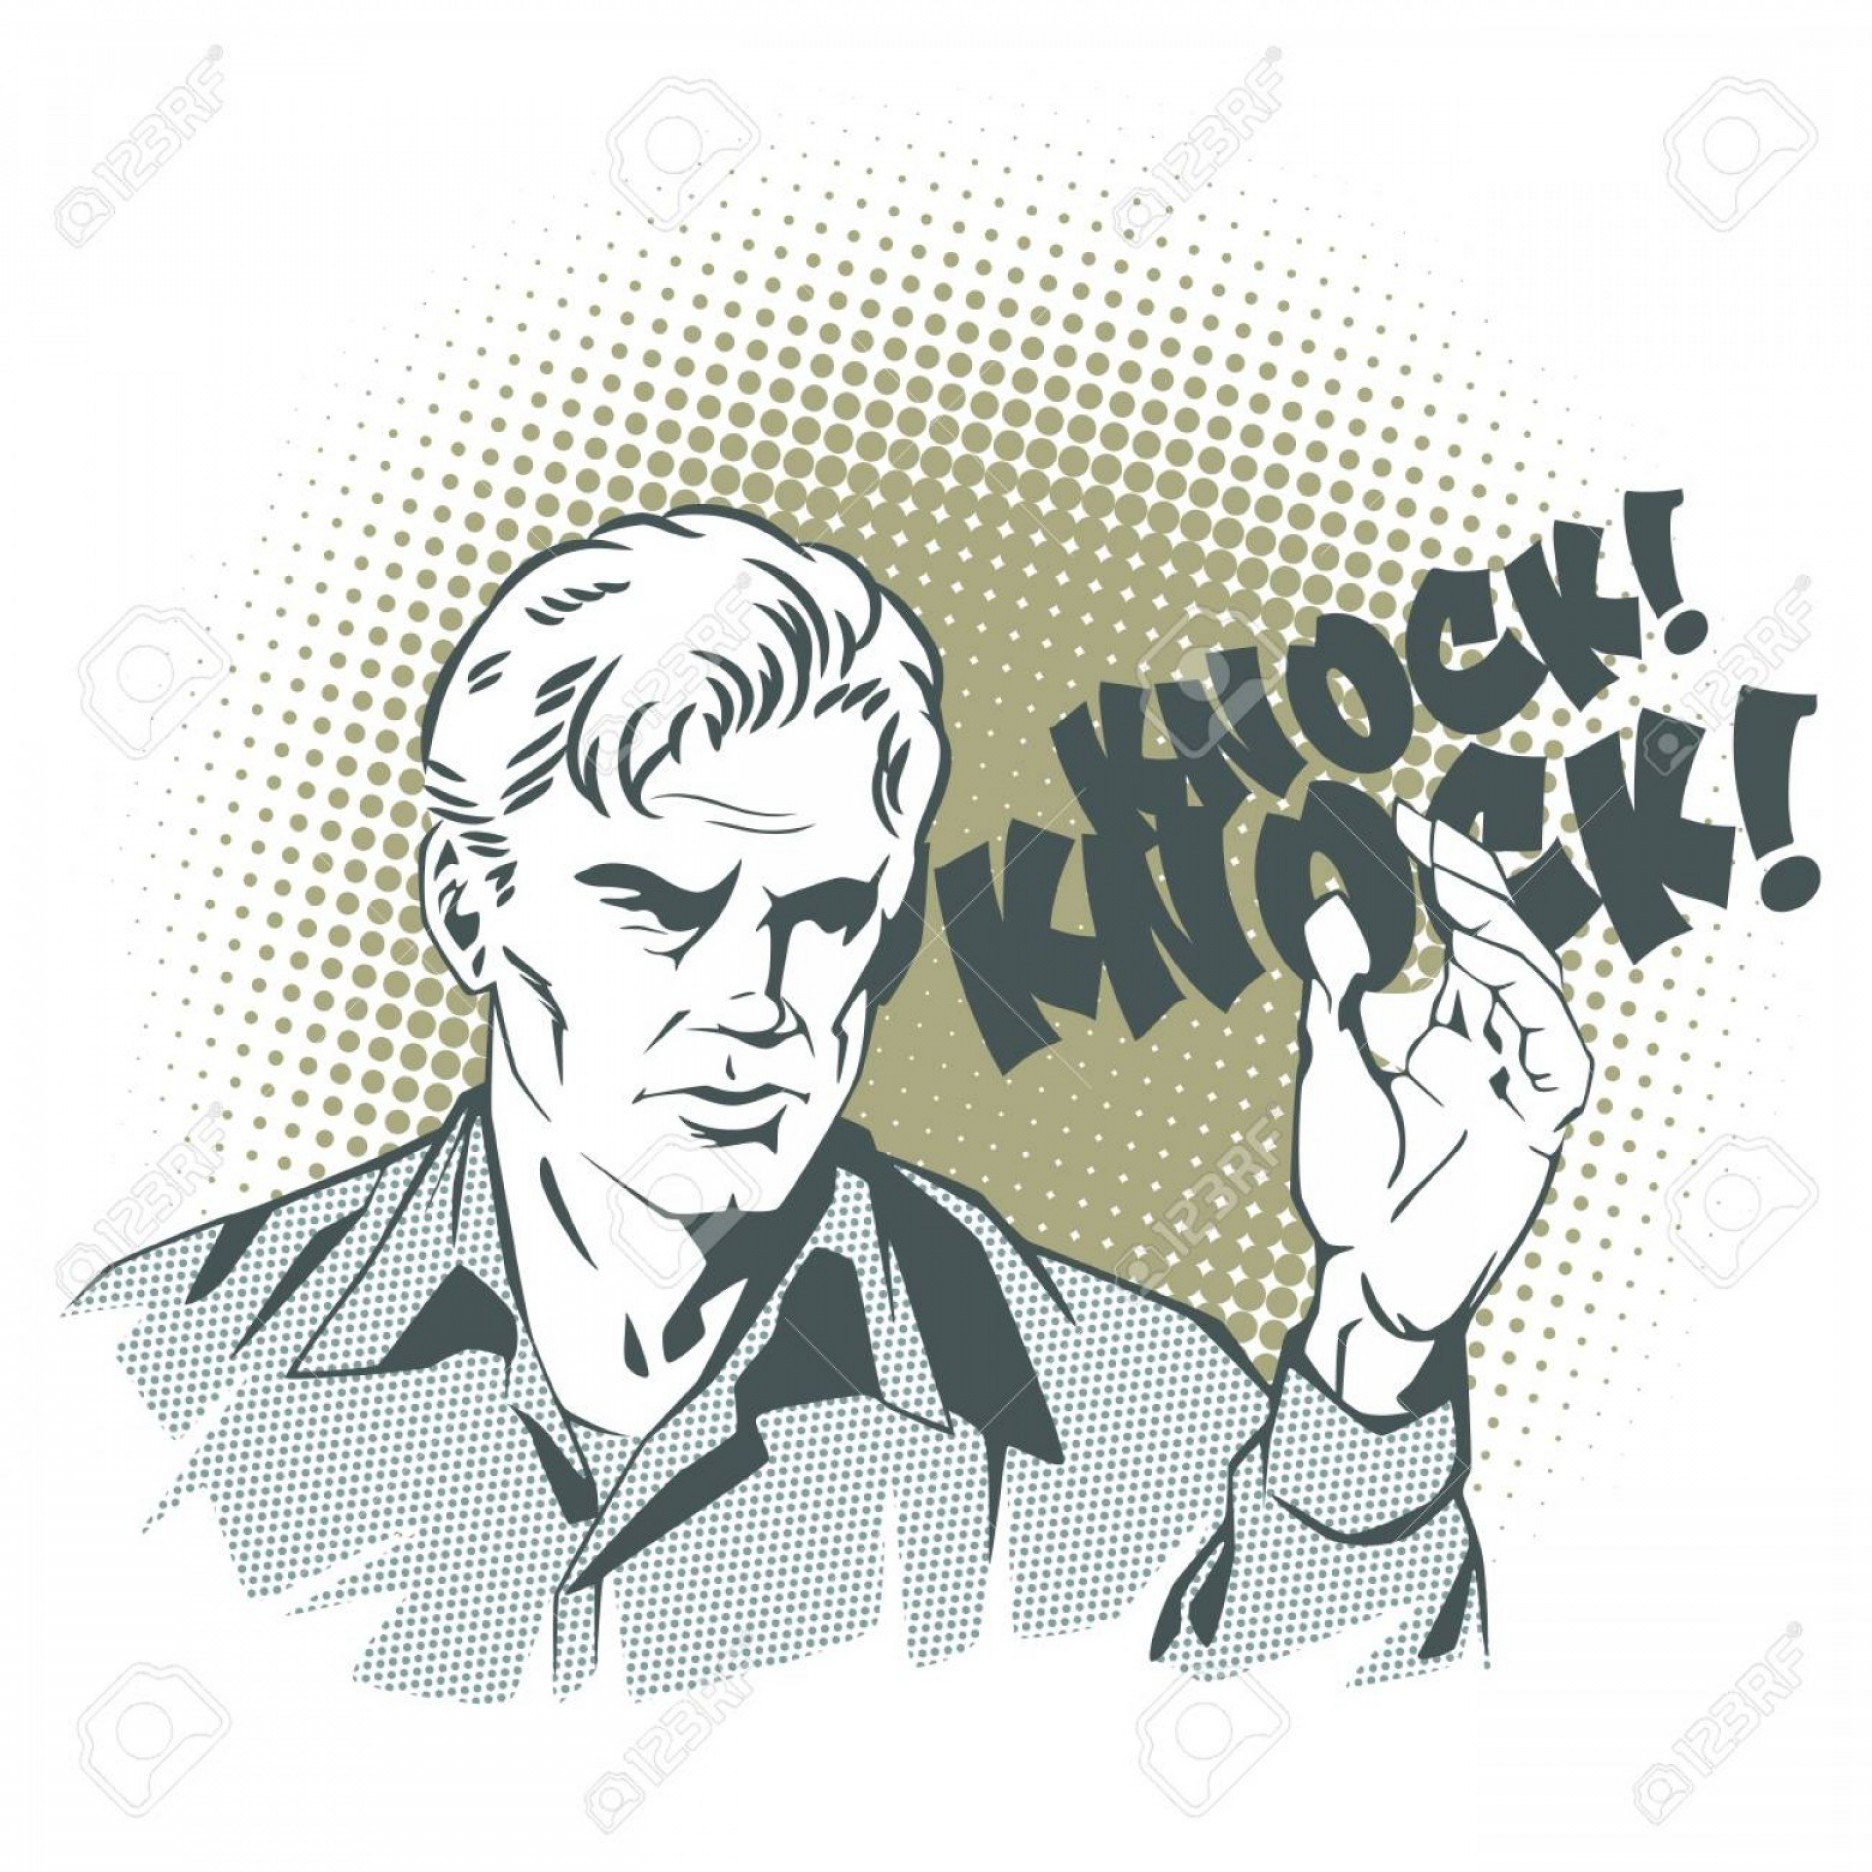 White Retro Vector People: Photostock Vector People In Retro Style Pop Art And Vintage Advertising A Man Knocks On The Door